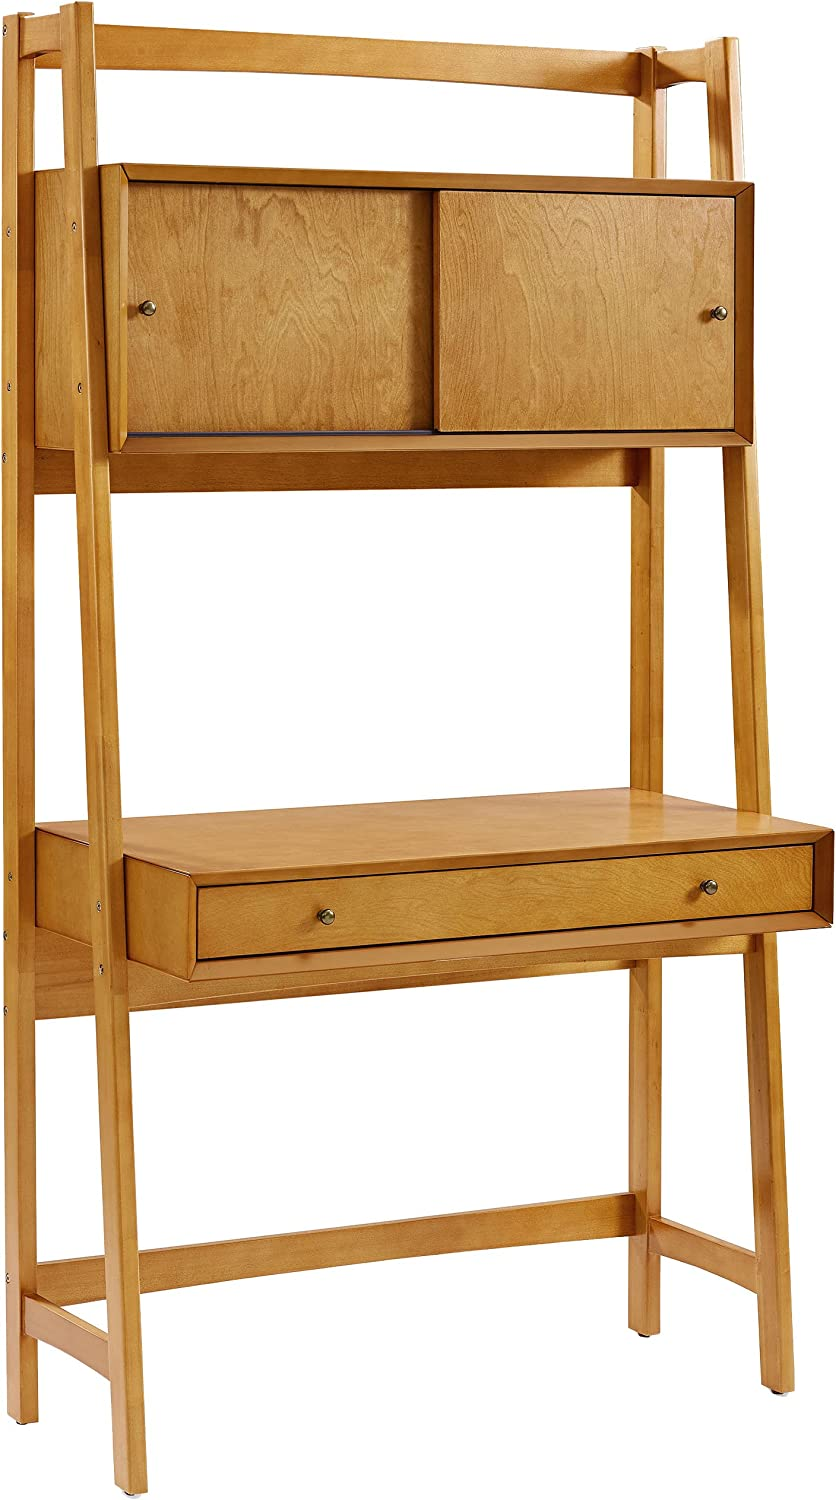 Crosley Furniture Landon Wall Desk - Acorn